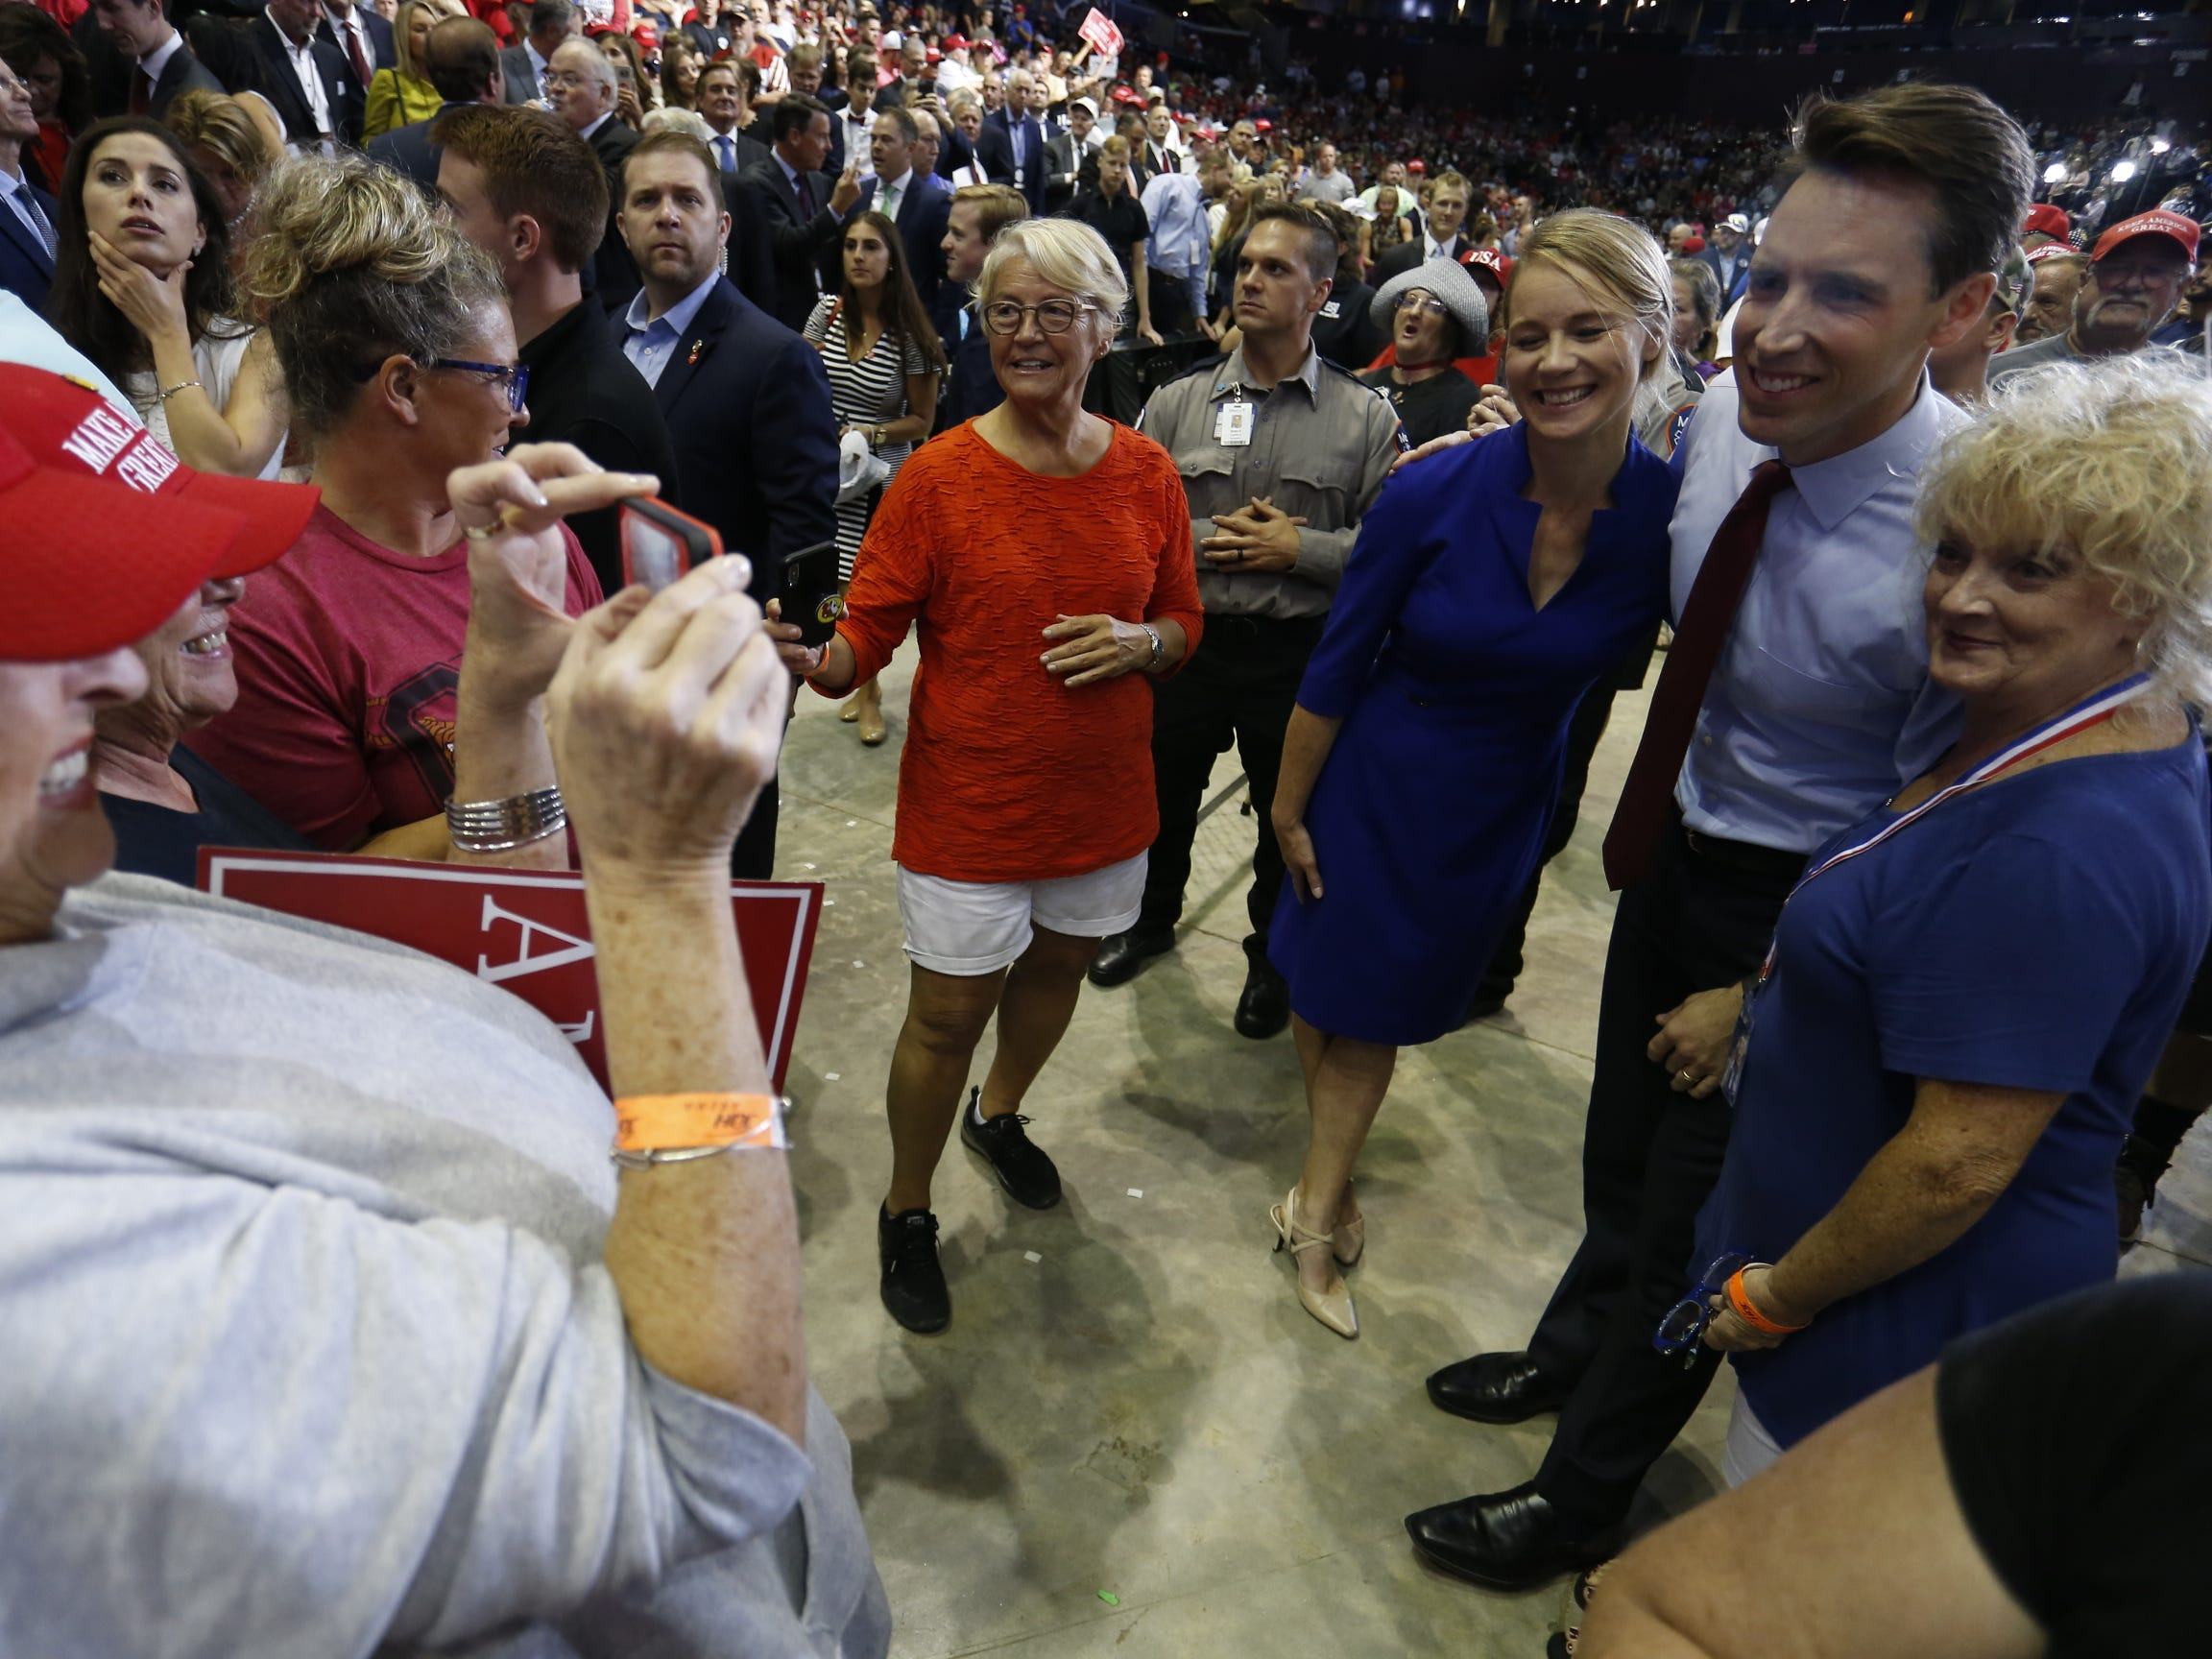 Missouri Attorney General Josh Hawley and supporters  Friday, Sept. 21, 2018 at President Trump's rally at JQH Arena in Springfield.